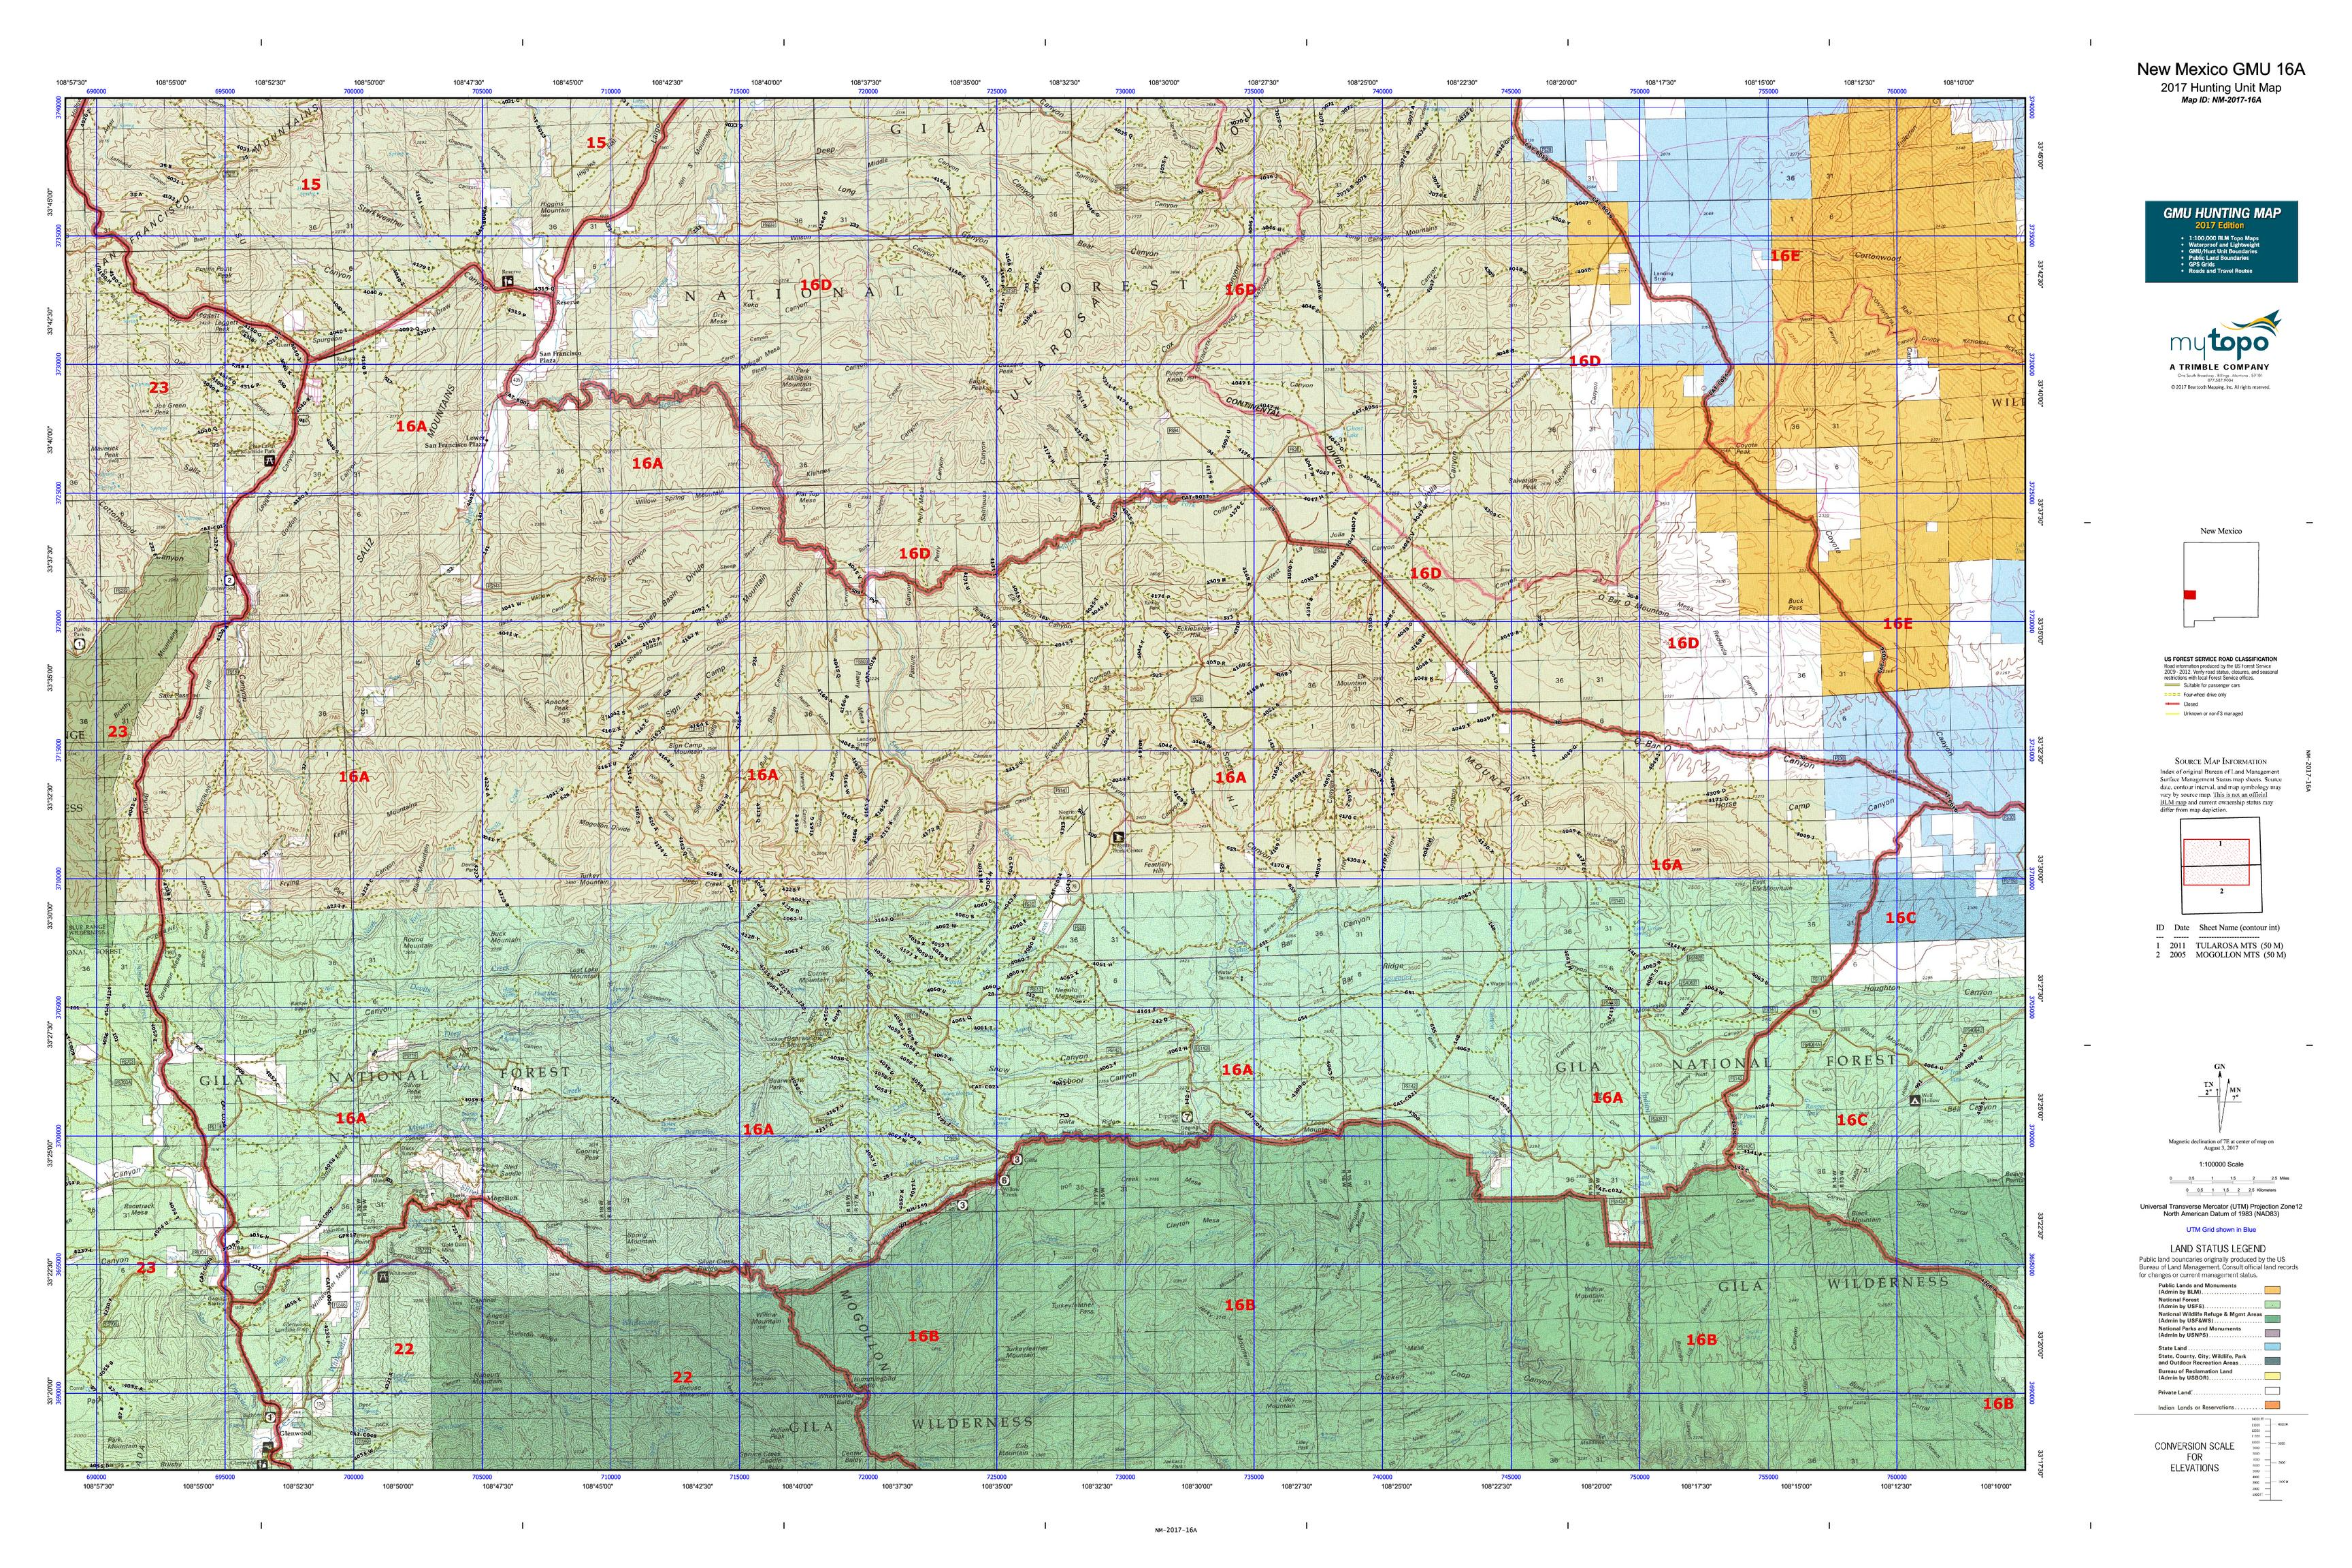 New Mexico GMU A Map MyTopo - Maps of new mexico